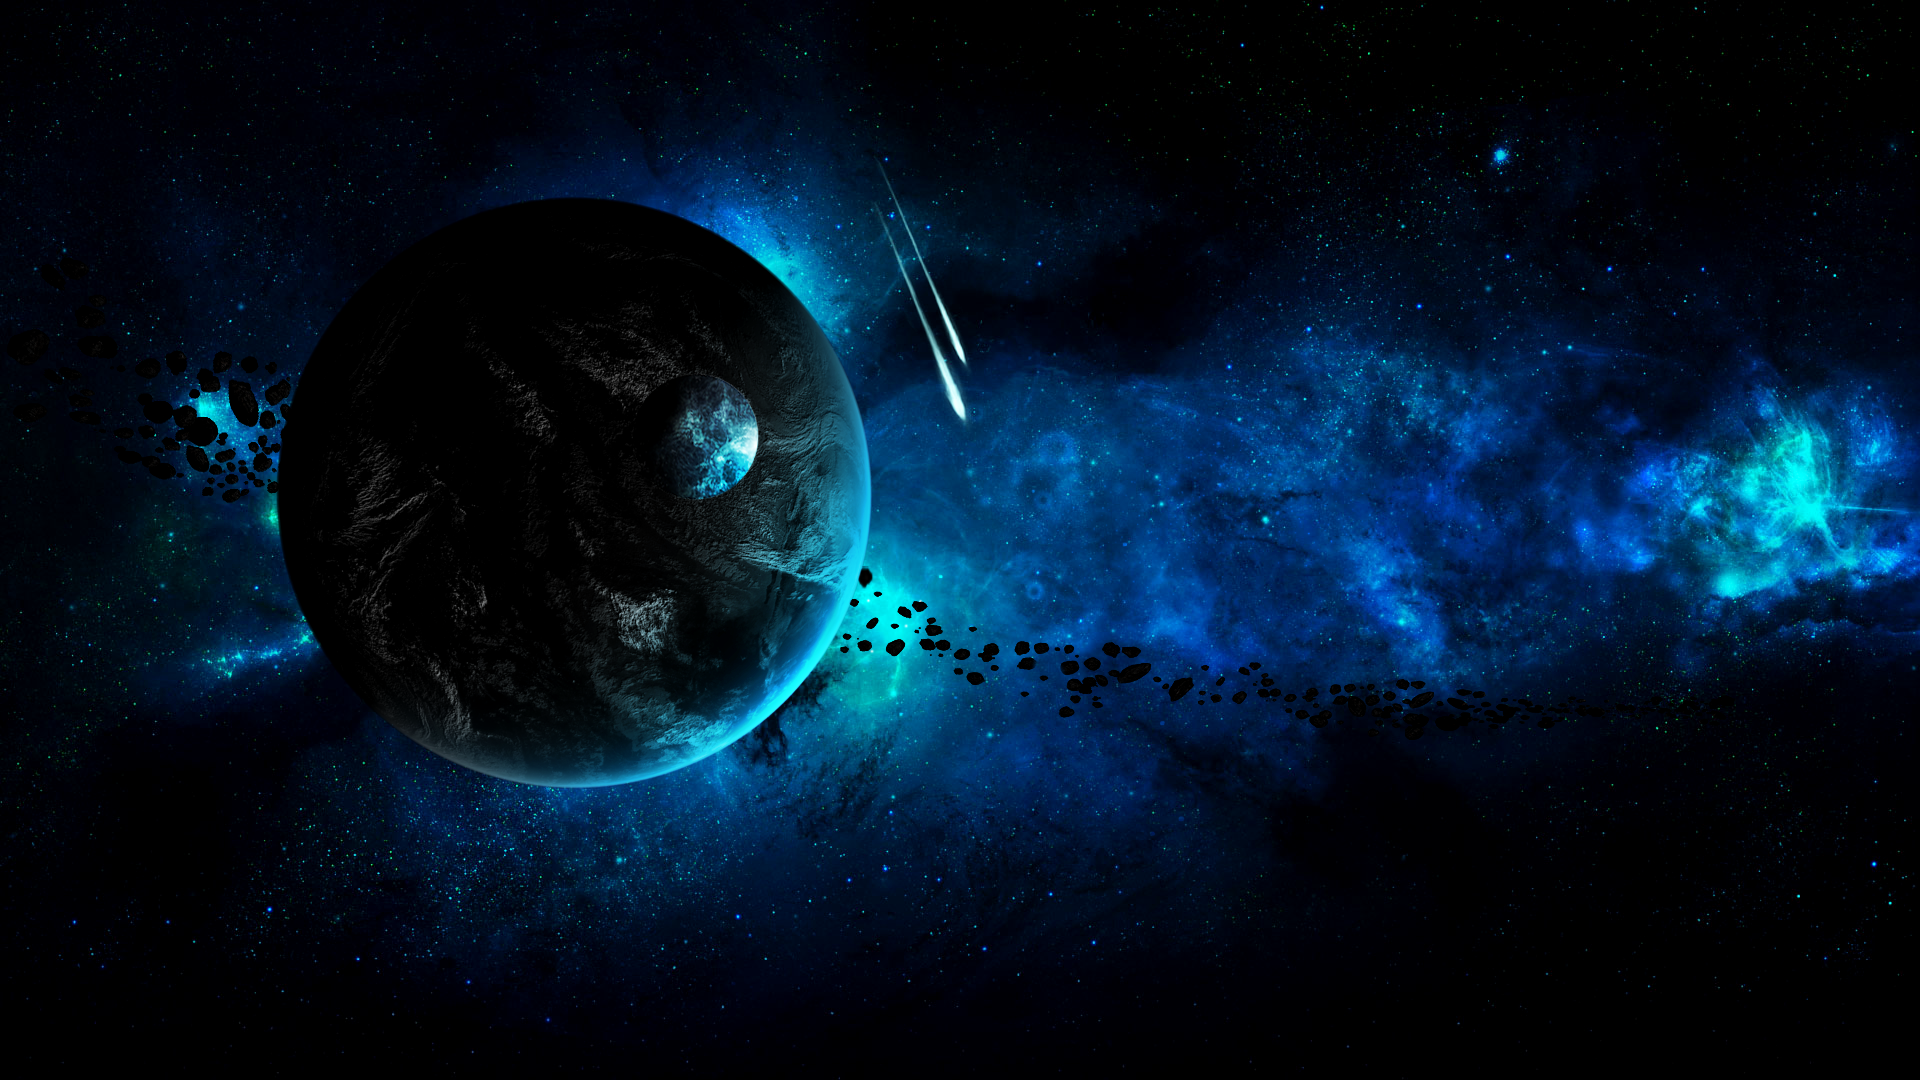 Space Wallpaper by Hardii on DeviantArt